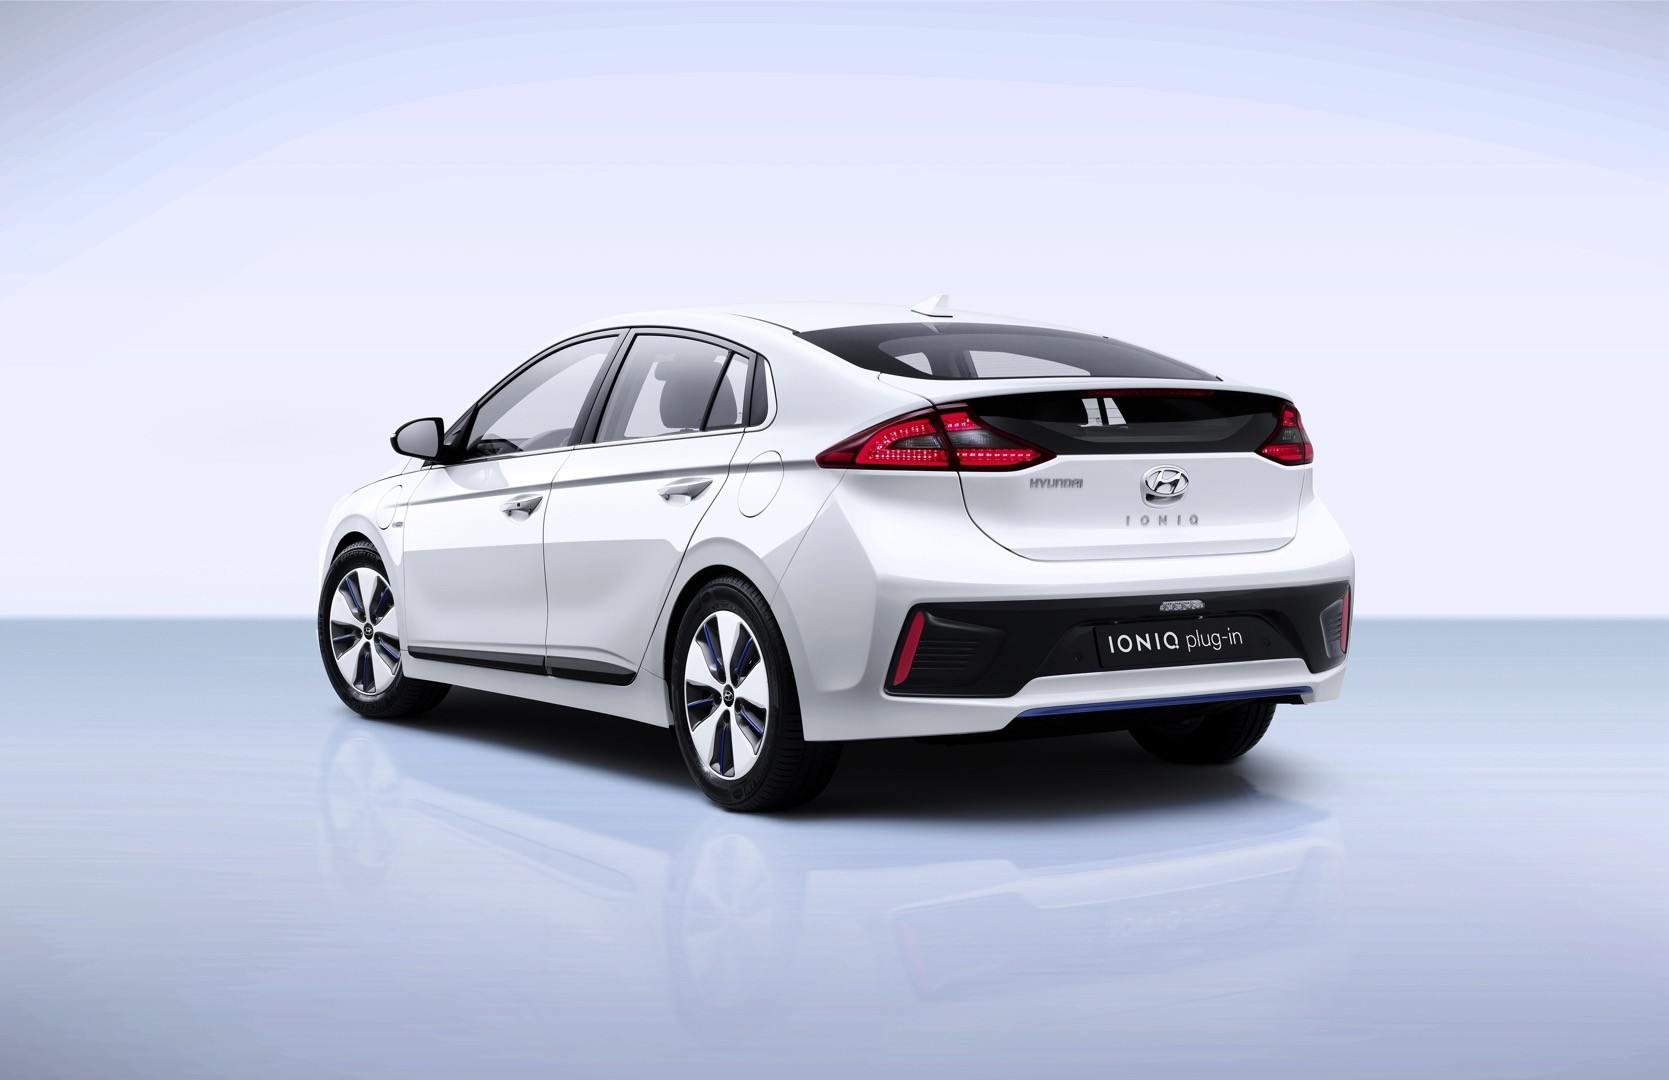 2017 hyundai ioniq electric priced in the uk from 24 495 phev due in q2 2017 autoevolution. Black Bedroom Furniture Sets. Home Design Ideas